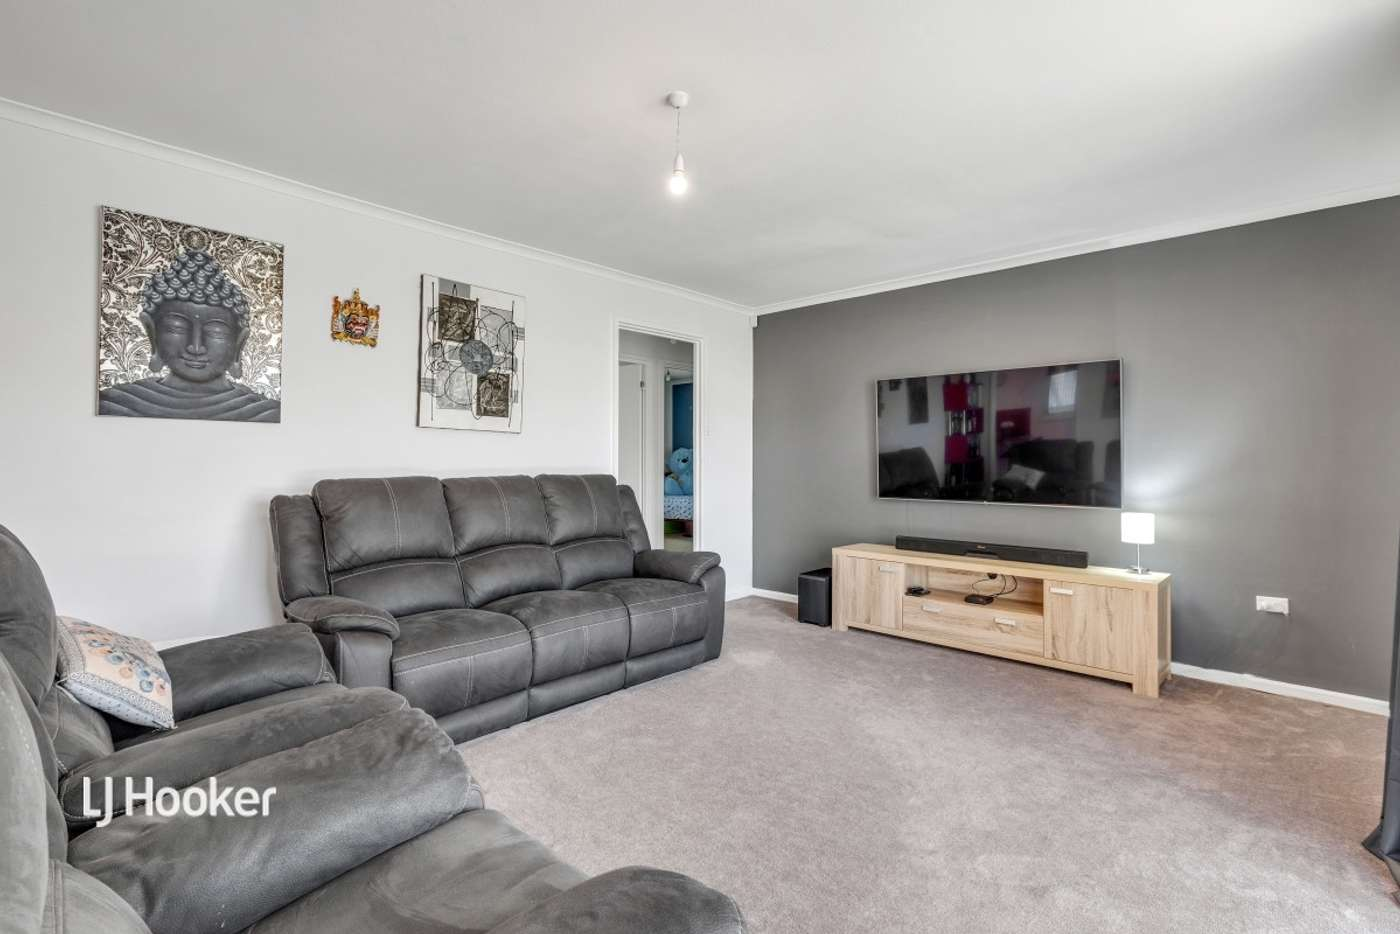 Sixth view of Homely house listing, 10 Hawker Crescent, Elizabeth East SA 5112